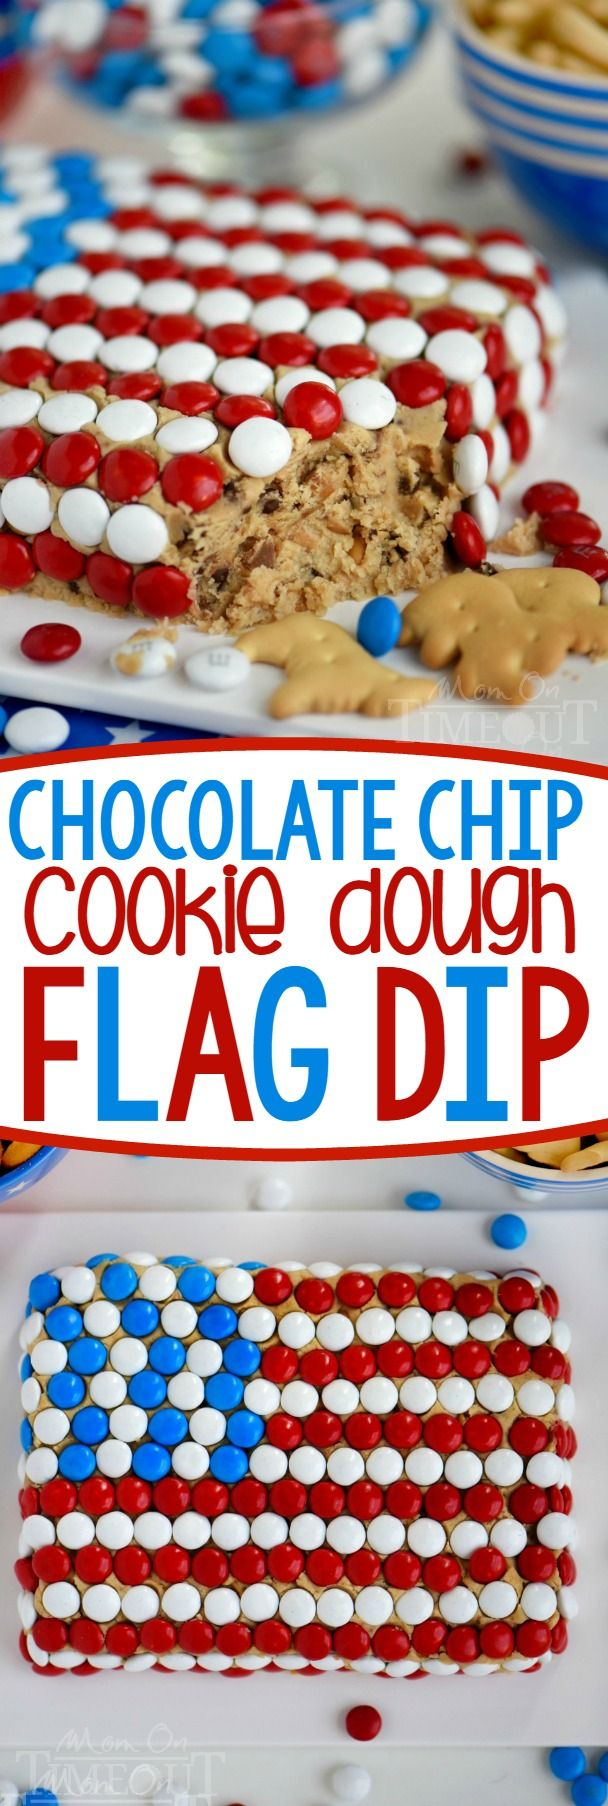 Celebrate with this outrageous Chocolate Chip Cookie Dough Flag Dip this 4th of July weekend! Edible chocolate chip cookie dough is loaded with toffee bits and peanut butter chips for the most delicious dip ever! Decorated in red, white, and blue, this easy dessert recipe is perfect for Memorial Day and Labor Day weekend as well!: